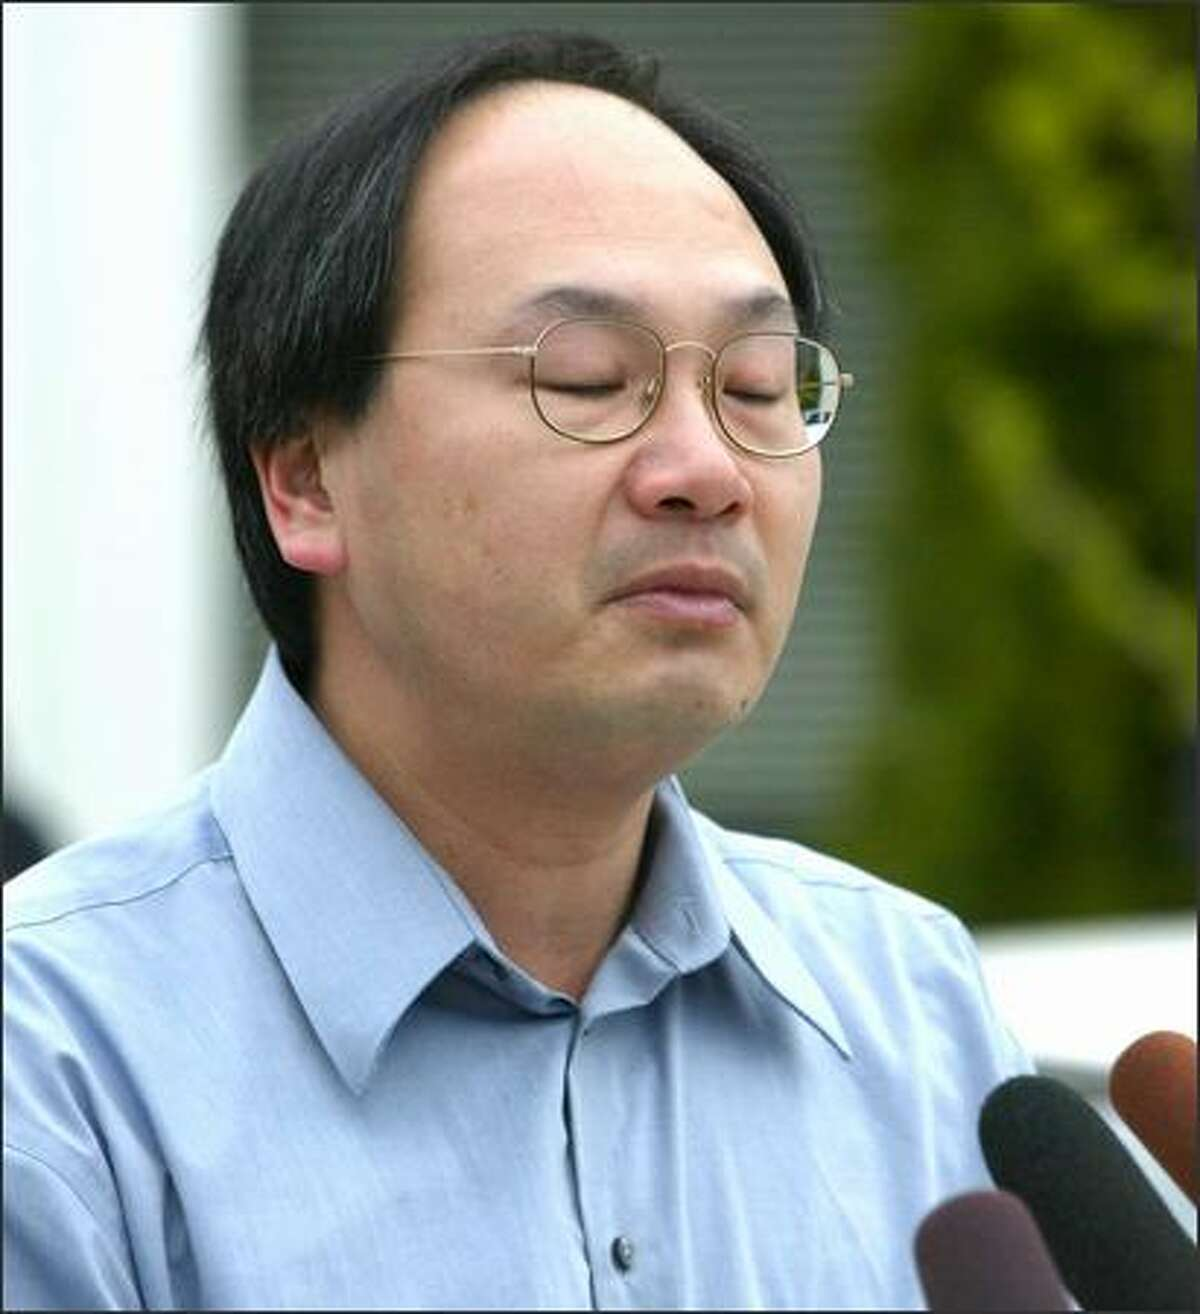 Dexter Lai wrestled with whether to call police.